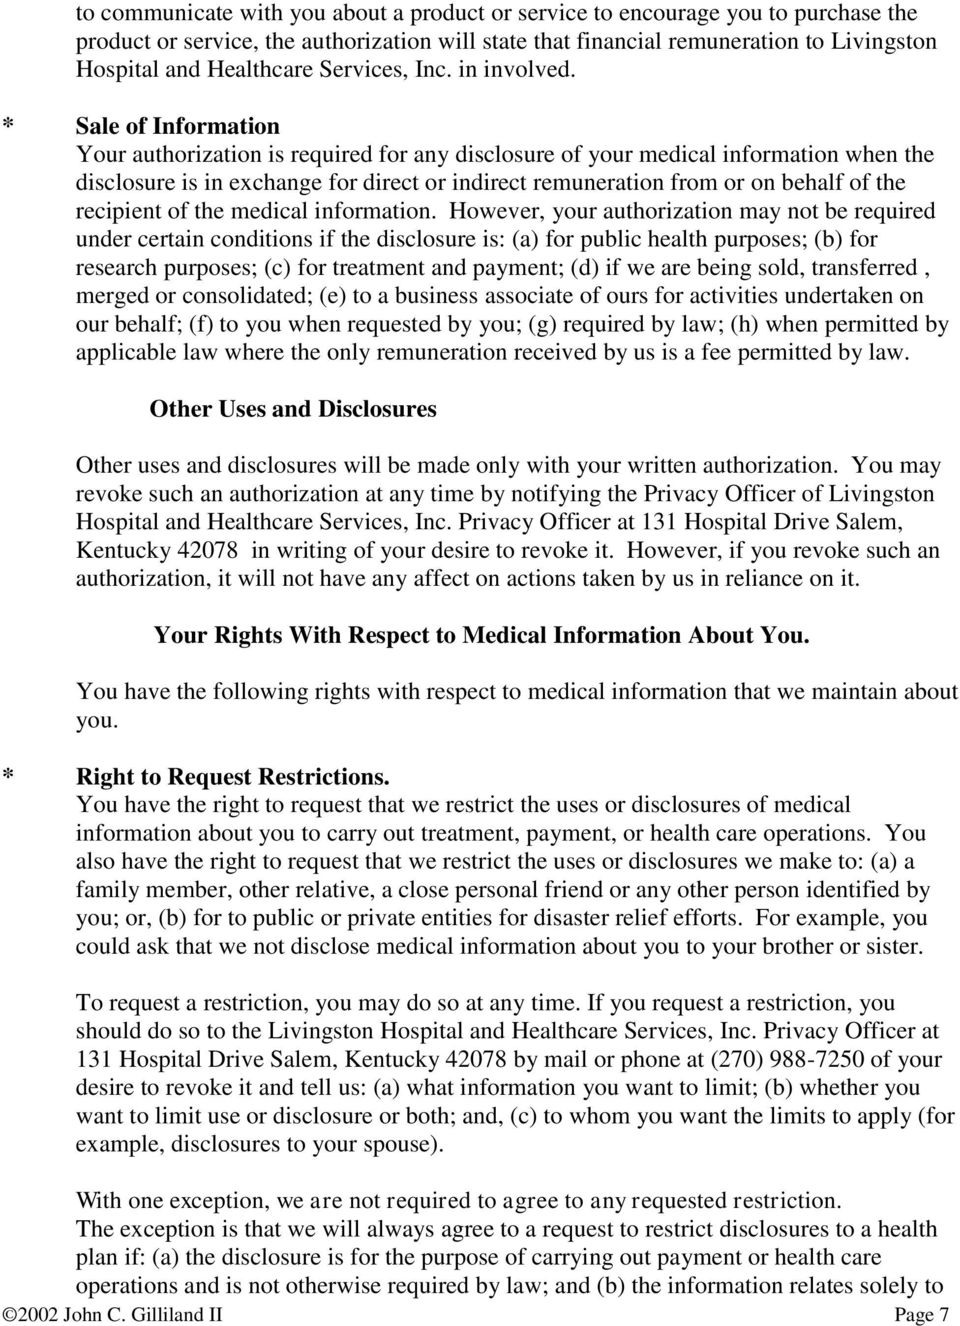 * Sale of Information Your authorization is required for any disclosure of your medical information when the disclosure is in exchange for direct or indirect remuneration from or on behalf of the